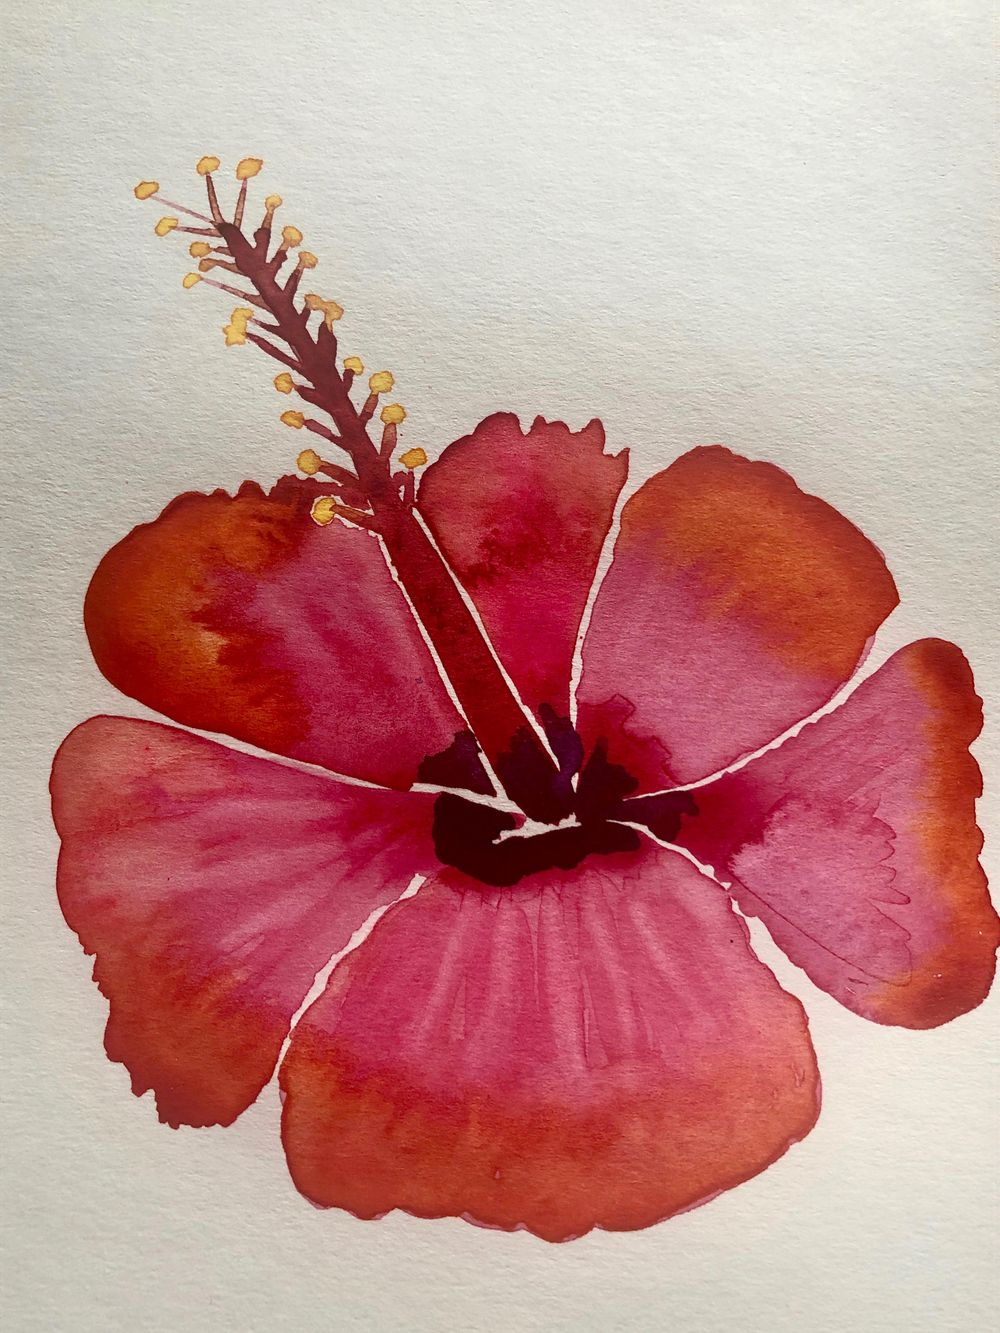 Modern Botanical Watercolors - What a Blast! - image 5 - student project